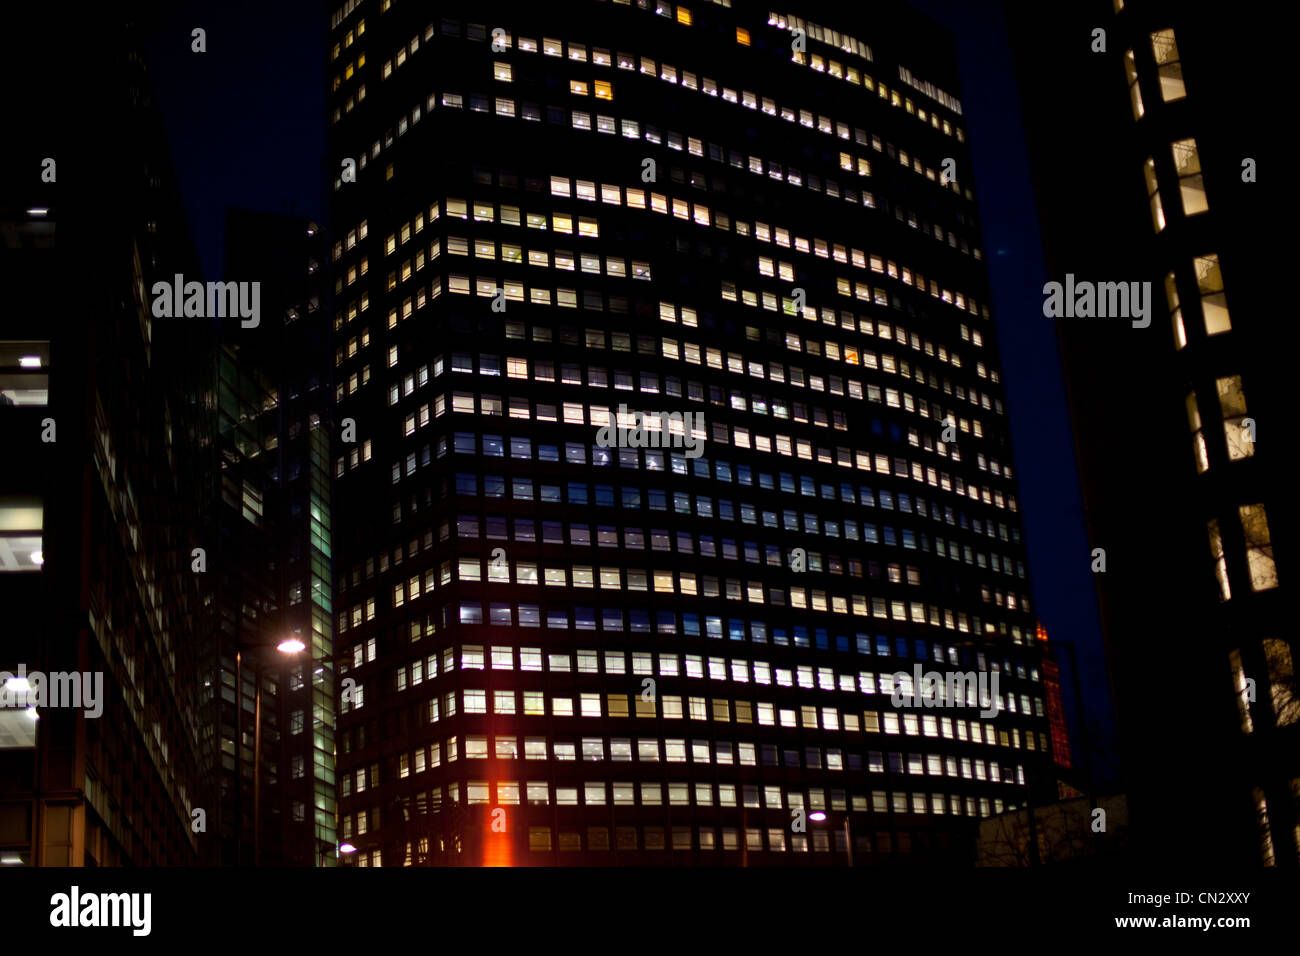 Skyscraper at night, London, England - Stock Image